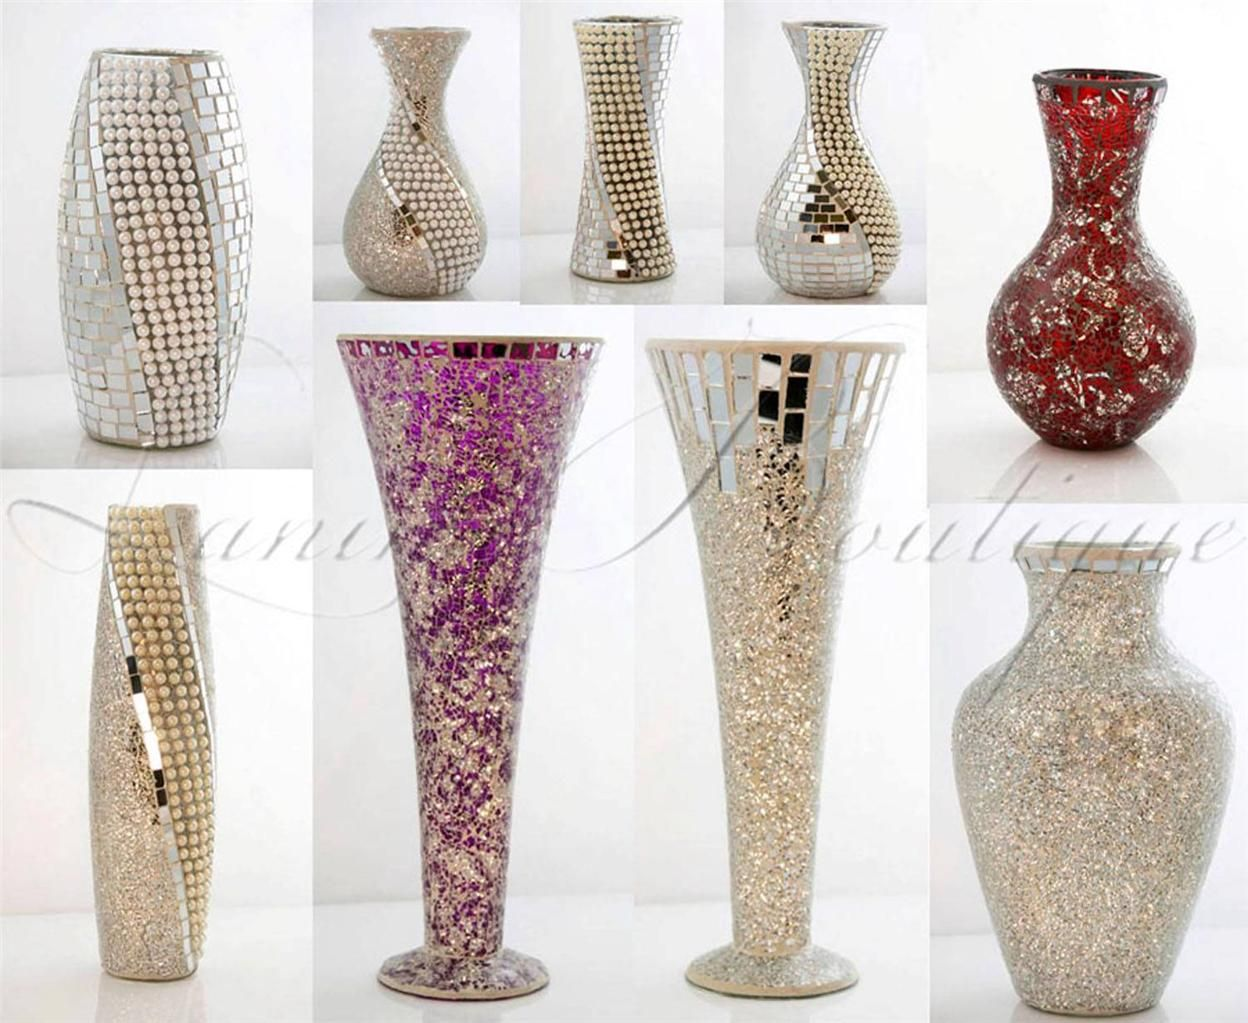 Mosaic glass bottles vases google search mosaic art decor tall 40 silver glass mosaic mirror vase bullet shape with pearls new reviewsmspy